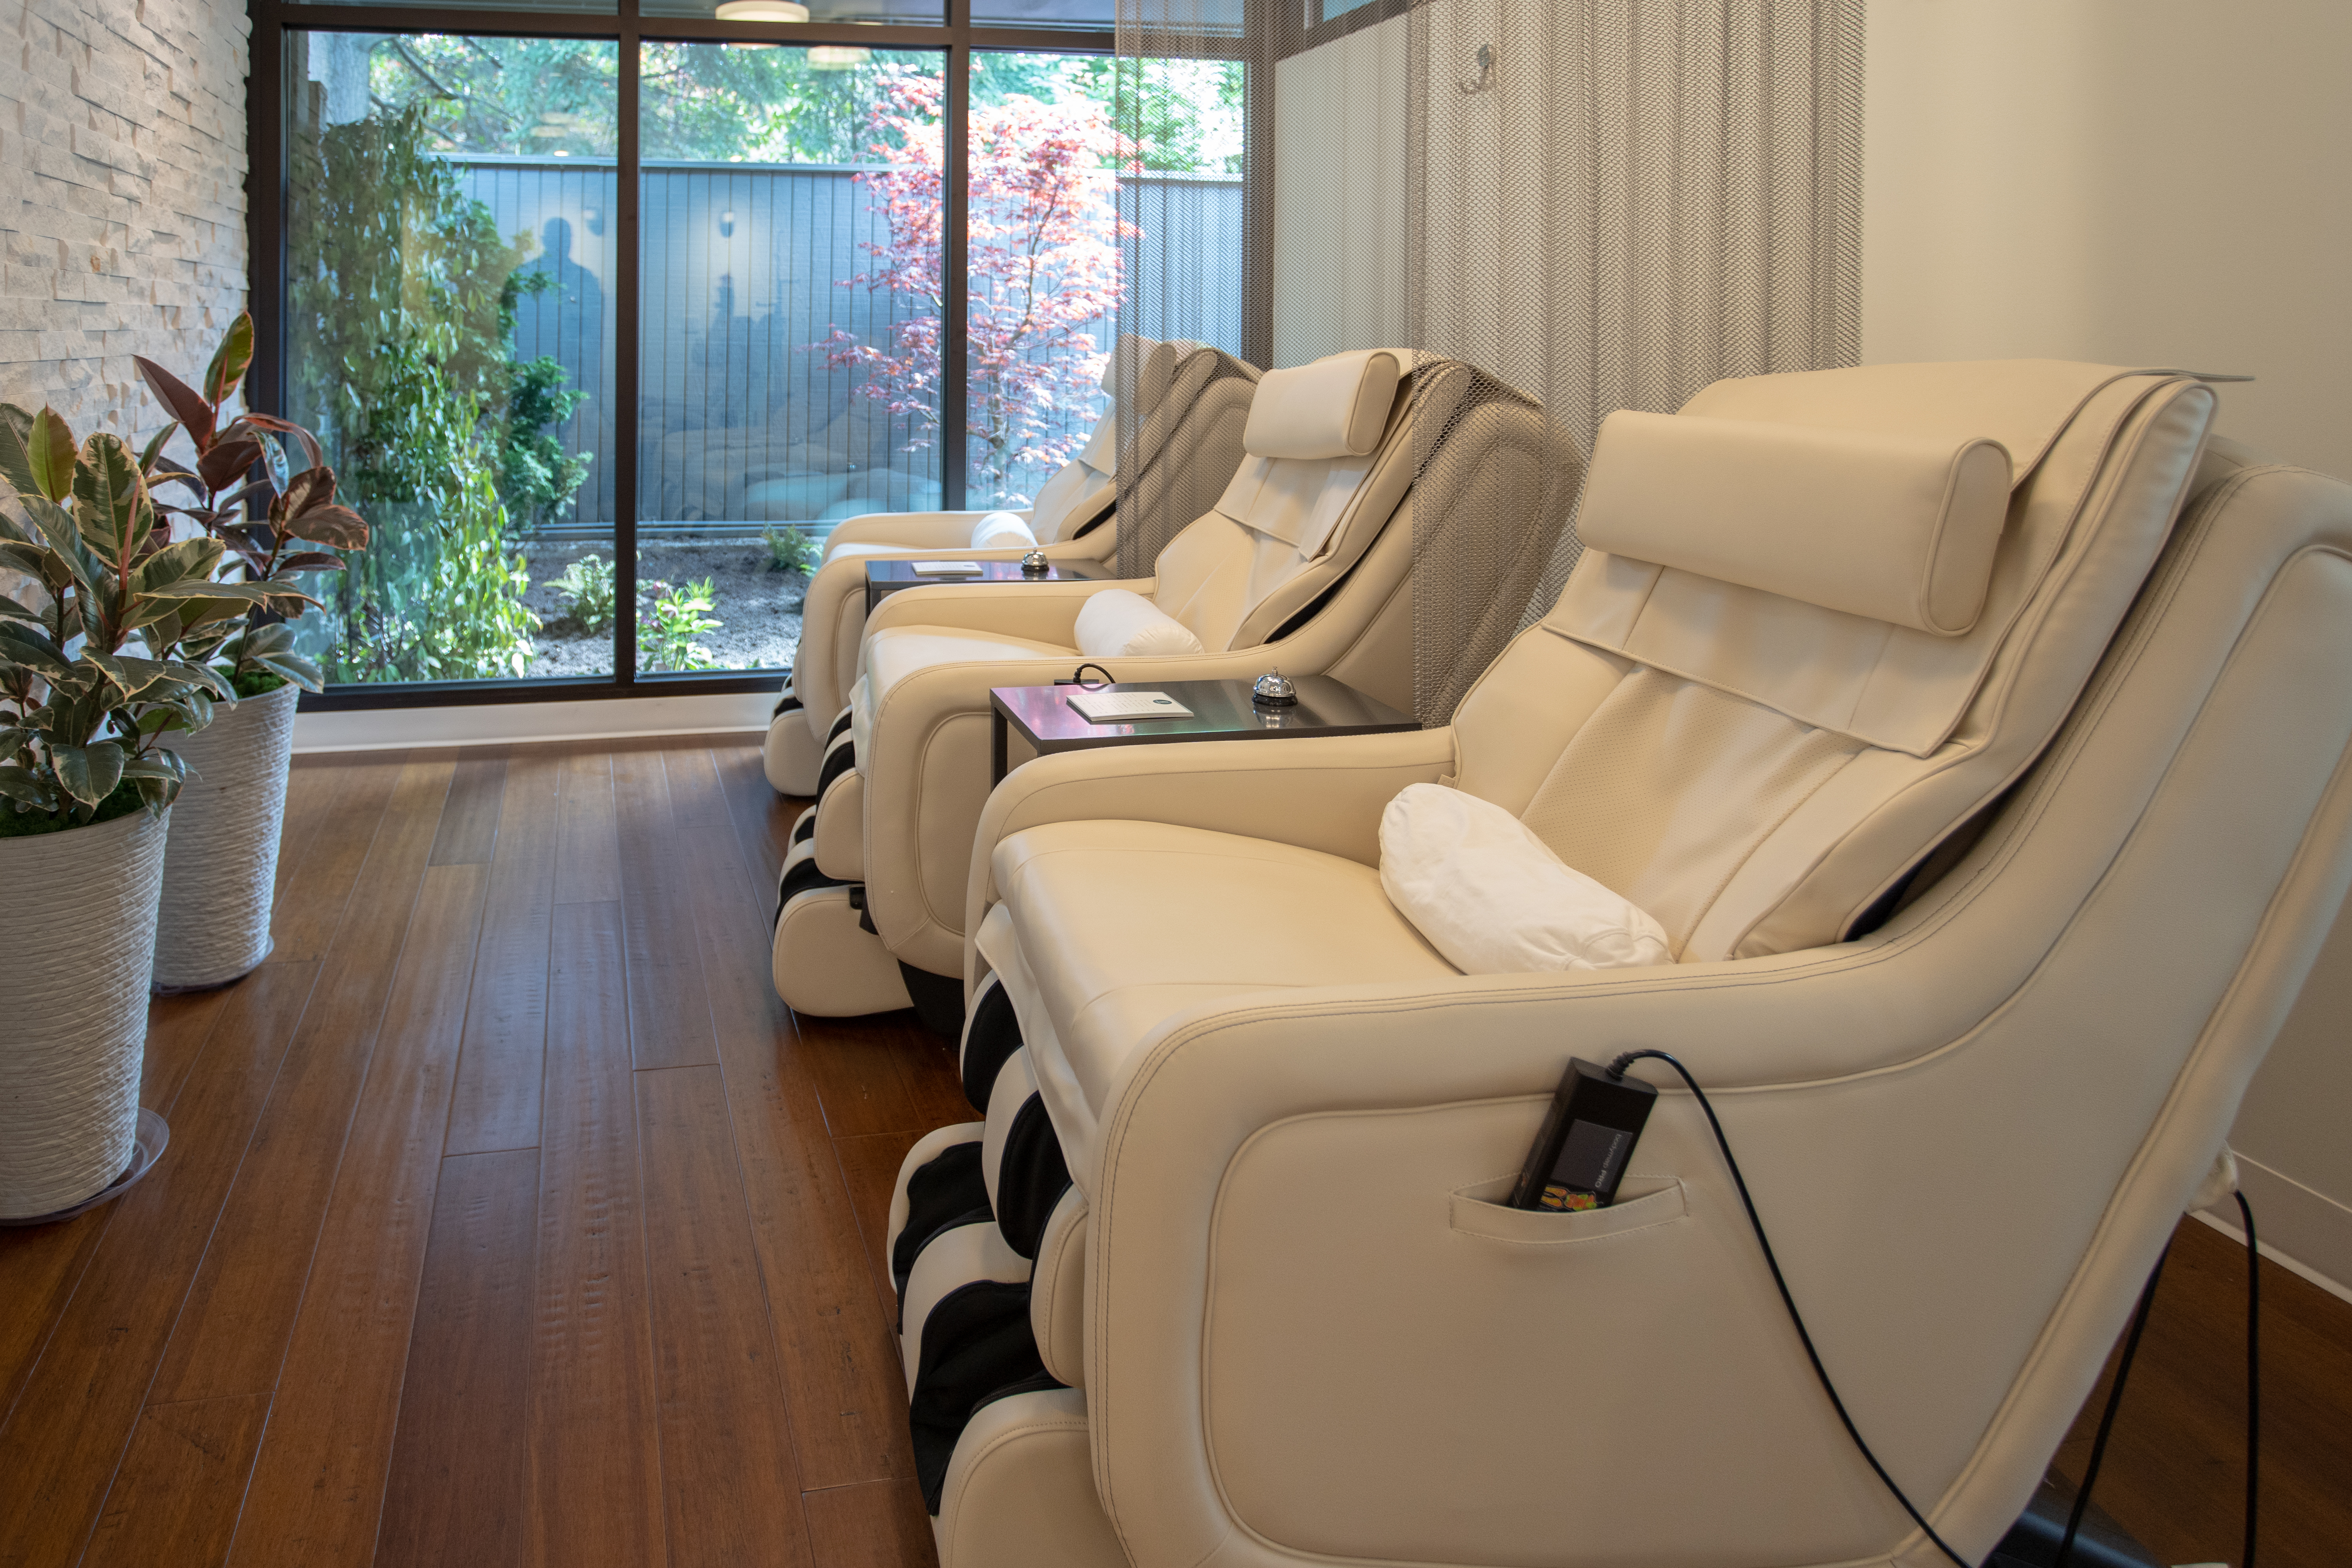 Hydrating and relaxing. Now this is something I can get on board with! (Image: Holistique IV Lounge).